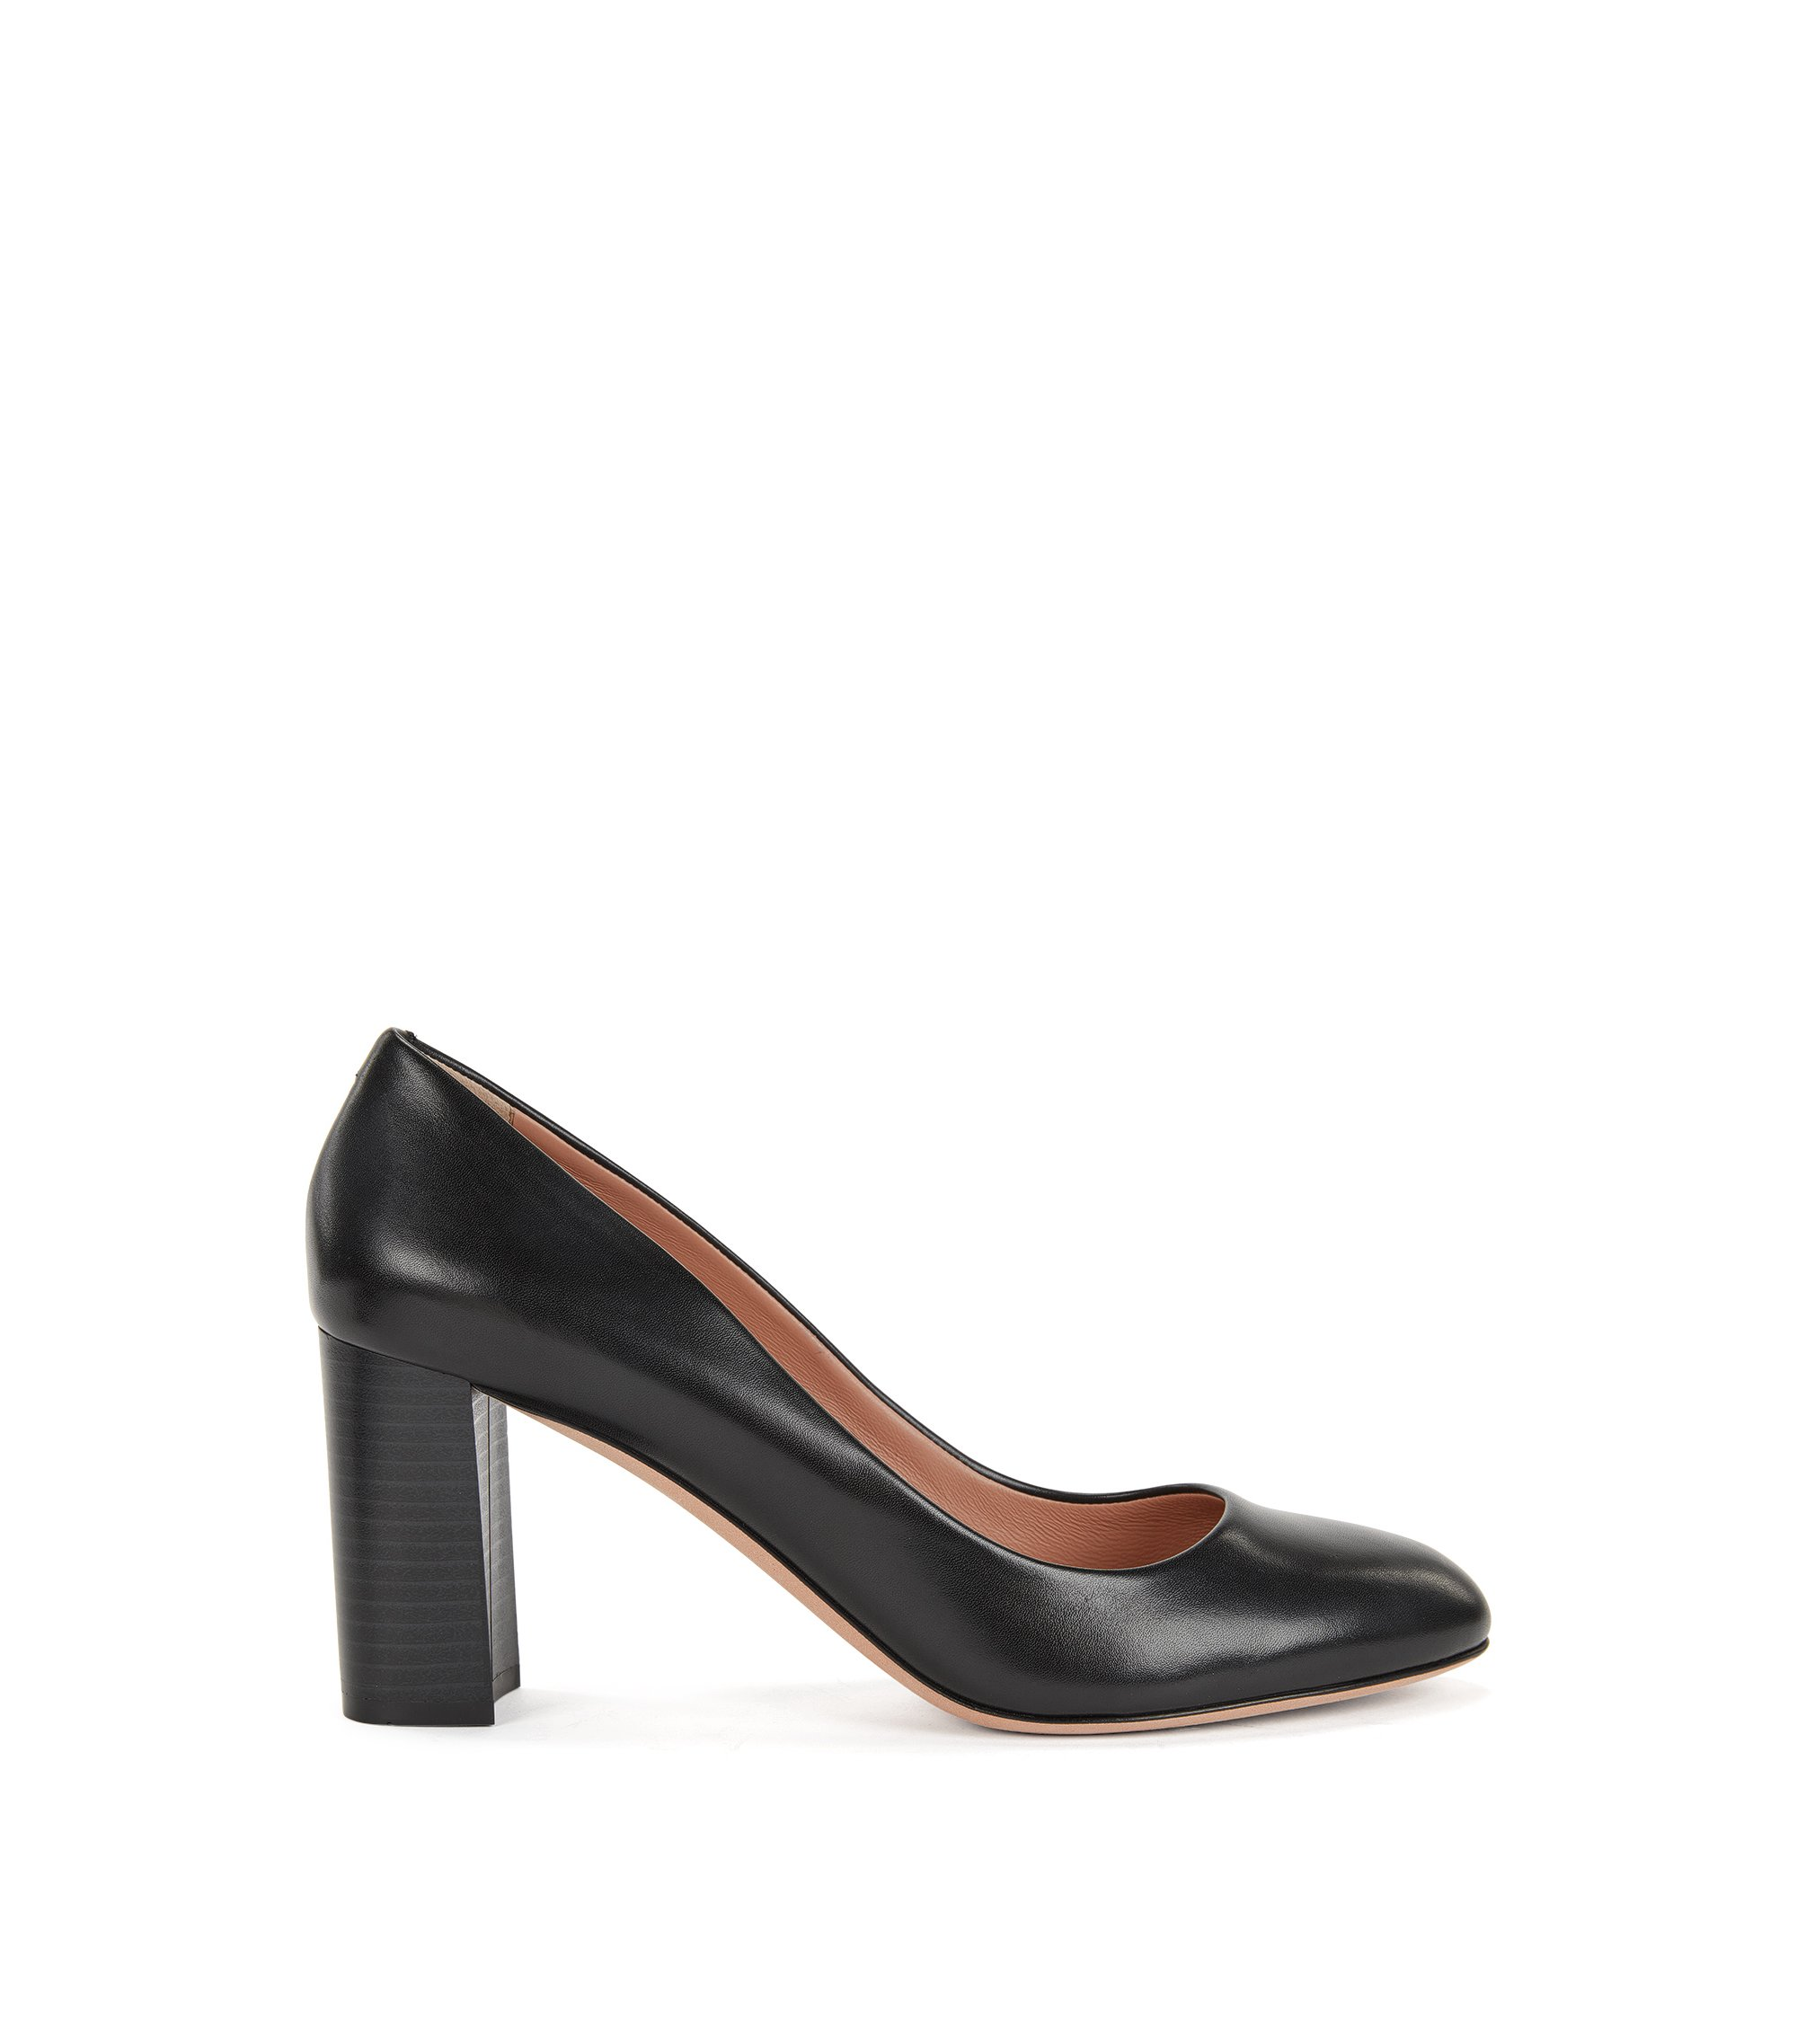 Leather Mid-Heel Pump | Farah, Black